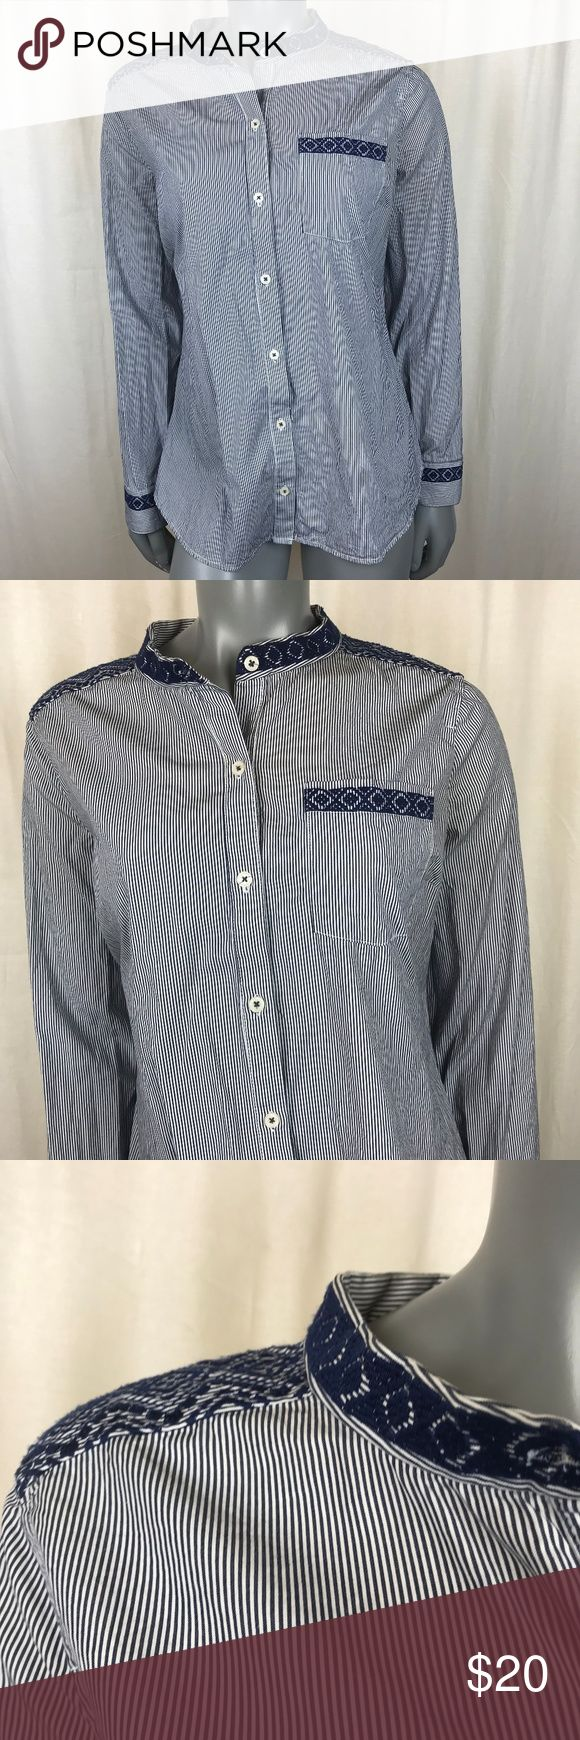 C Wonder Womens Medium OxfordShirt Pinstripe C Wonder Womens Medium Oxford Button Up Pinstripe Shirt Tunic Blue Burch Cotton c wonder Tops Button Down Shirts